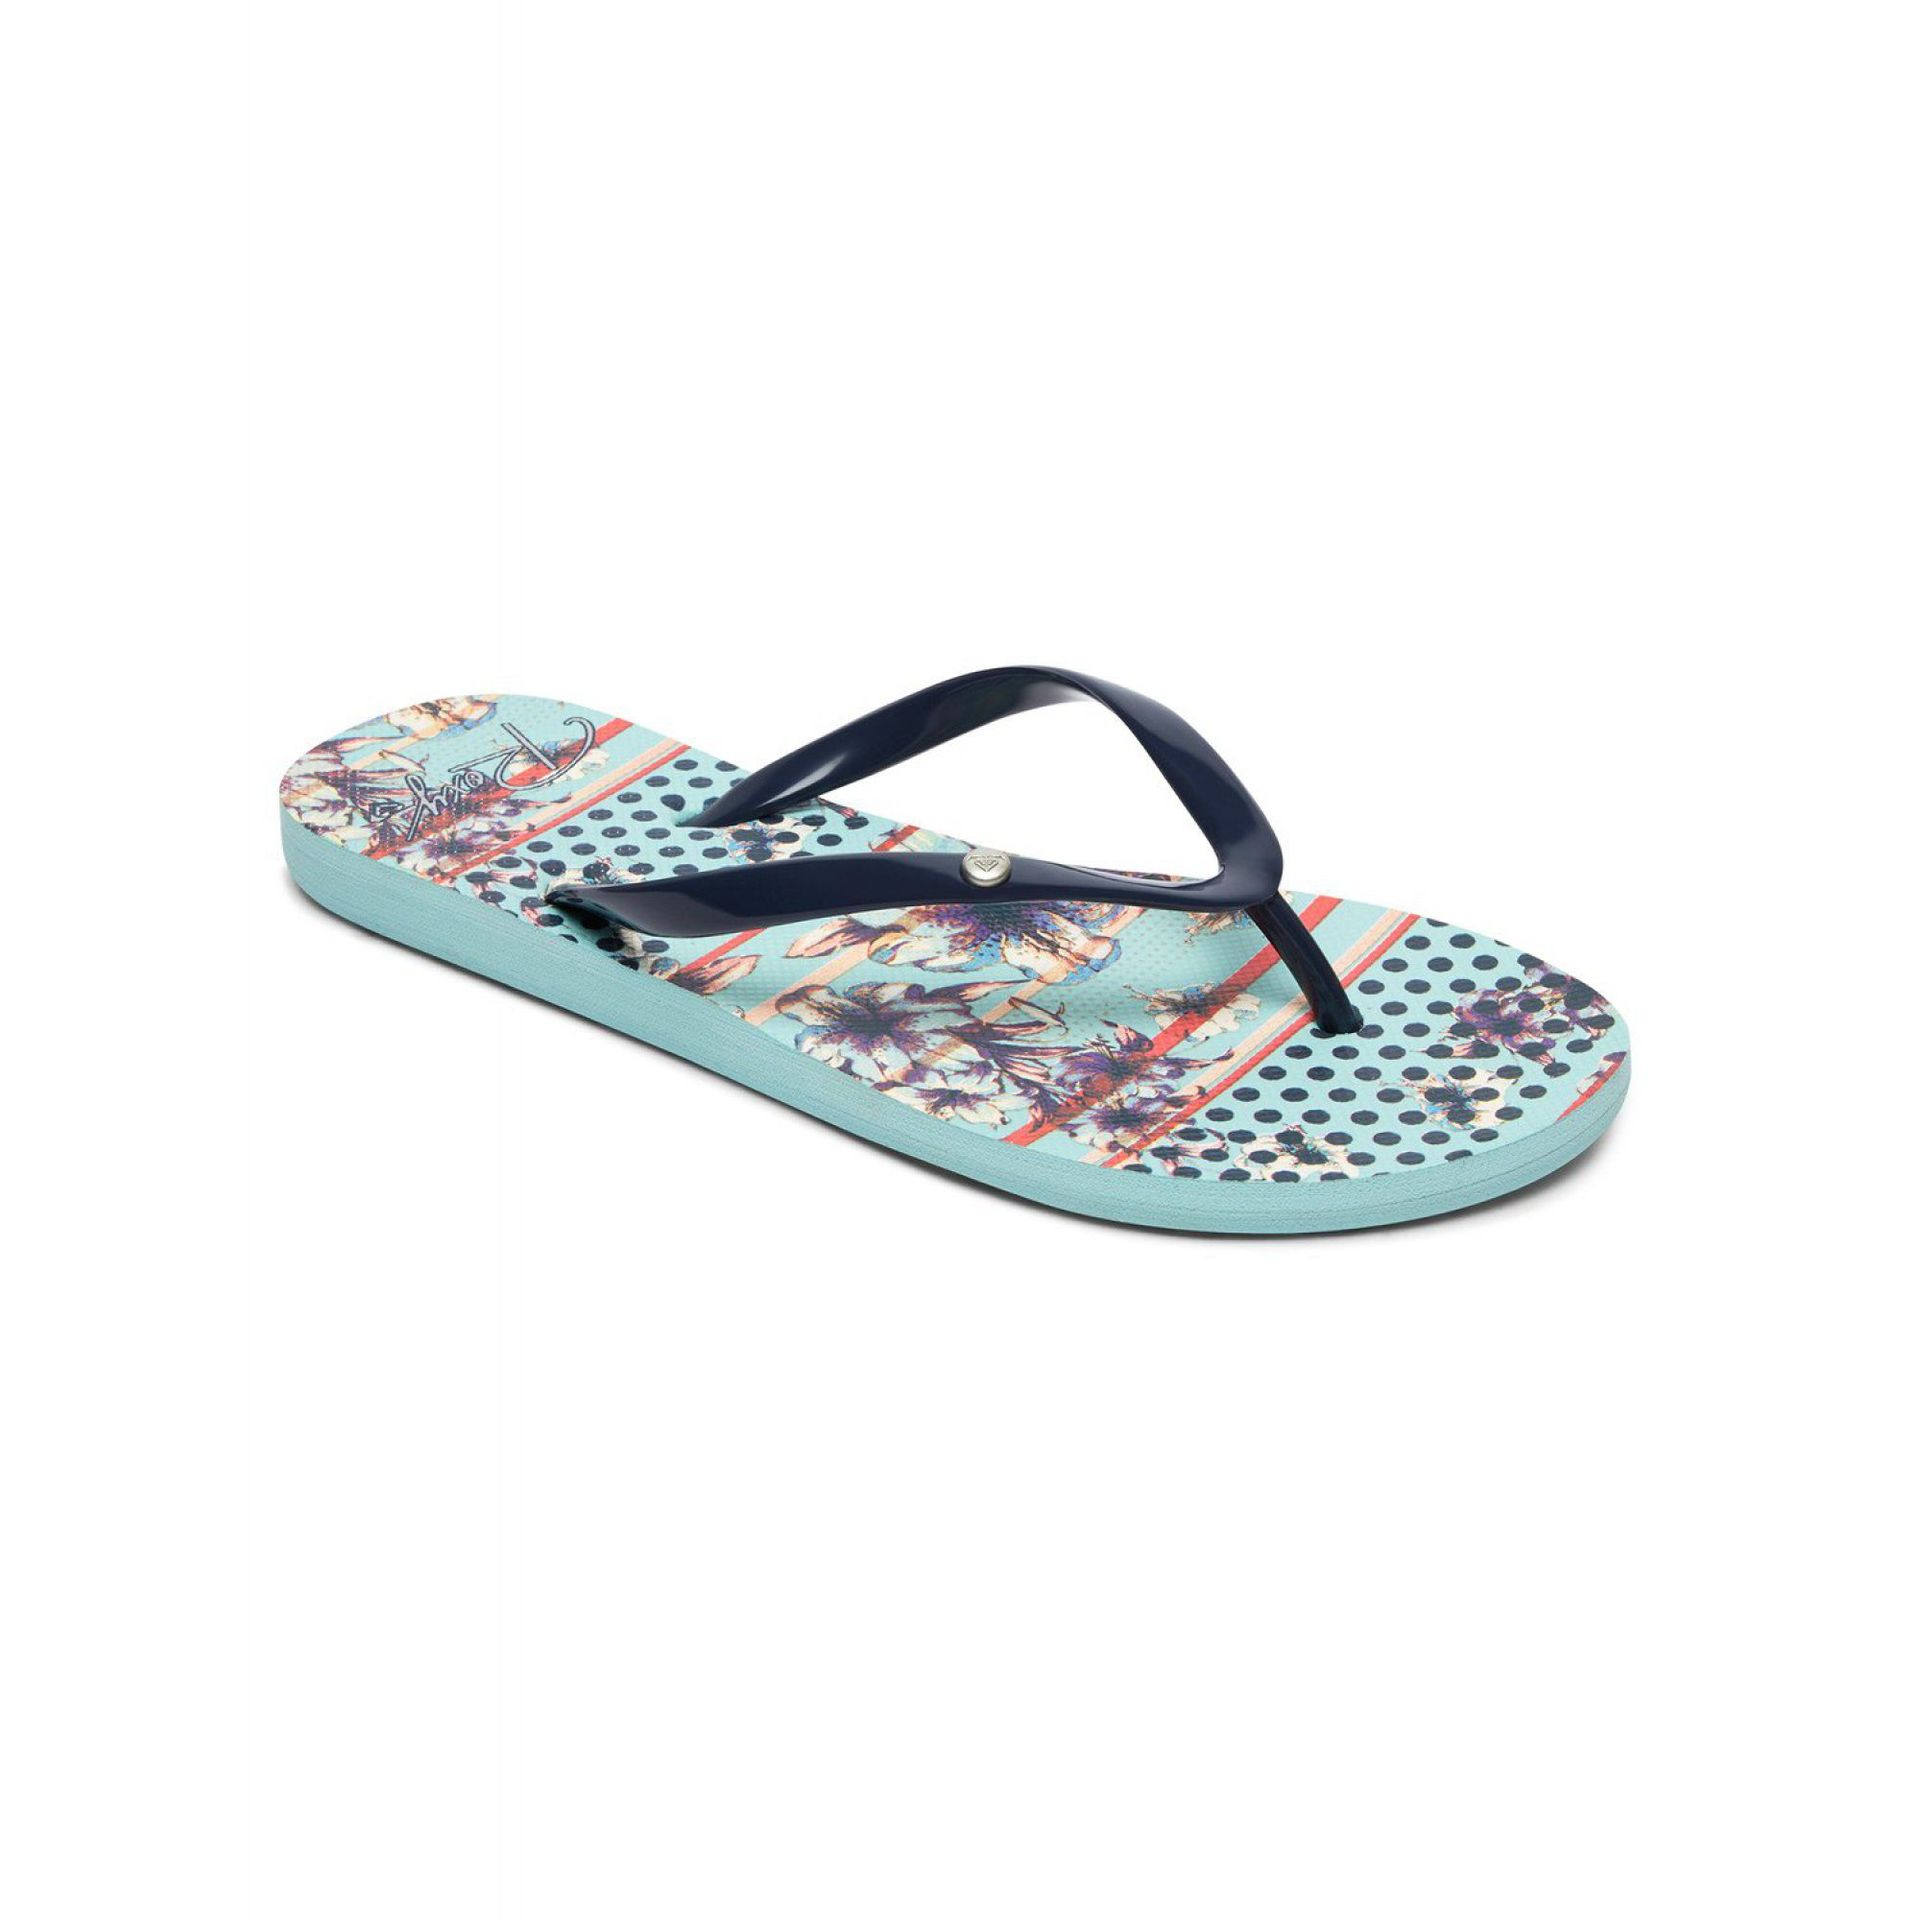 KLAPKI ROXY PORTOFINO LIGHT BLUE